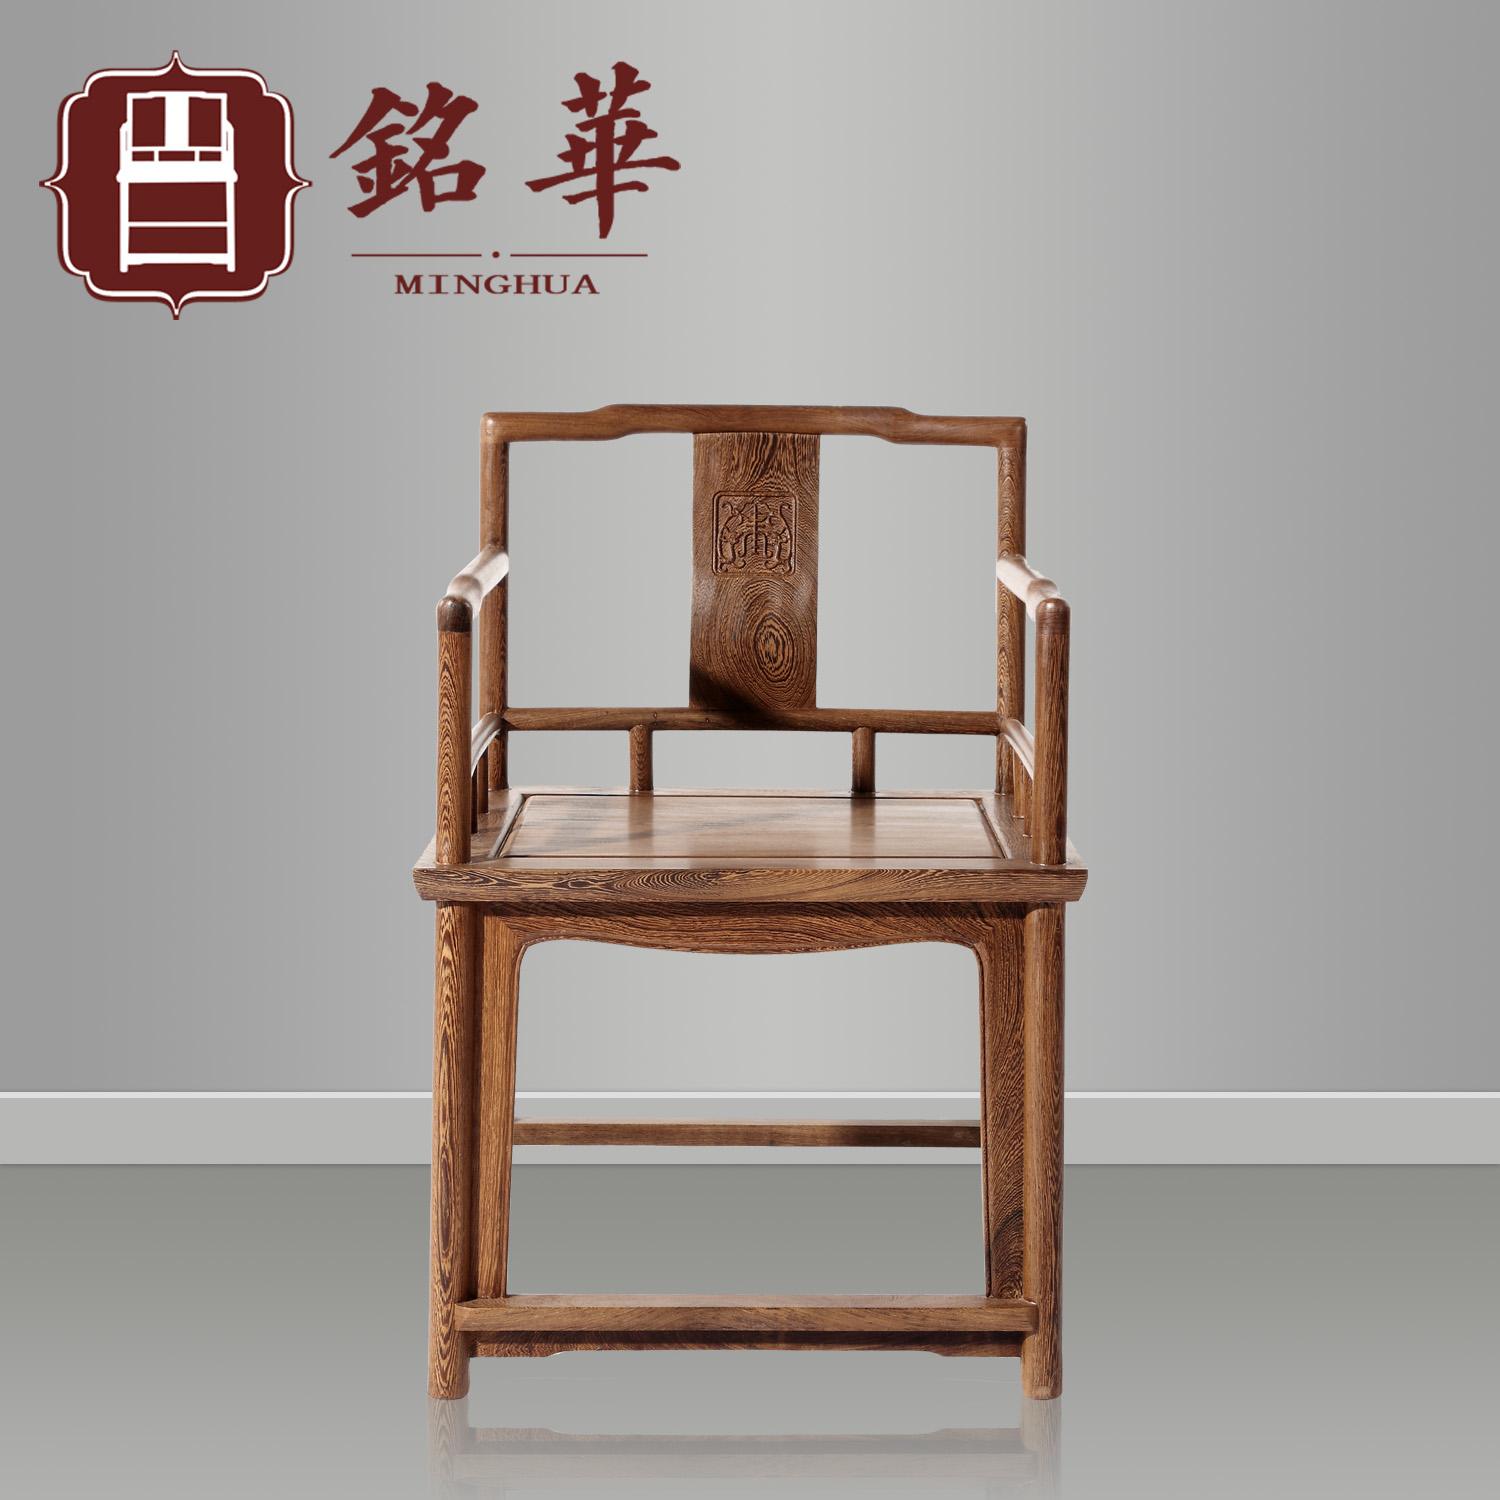 Mahogany armchairs wenge wood chair armrest chairs coffee table three sets of roses chinese wood chair study chair